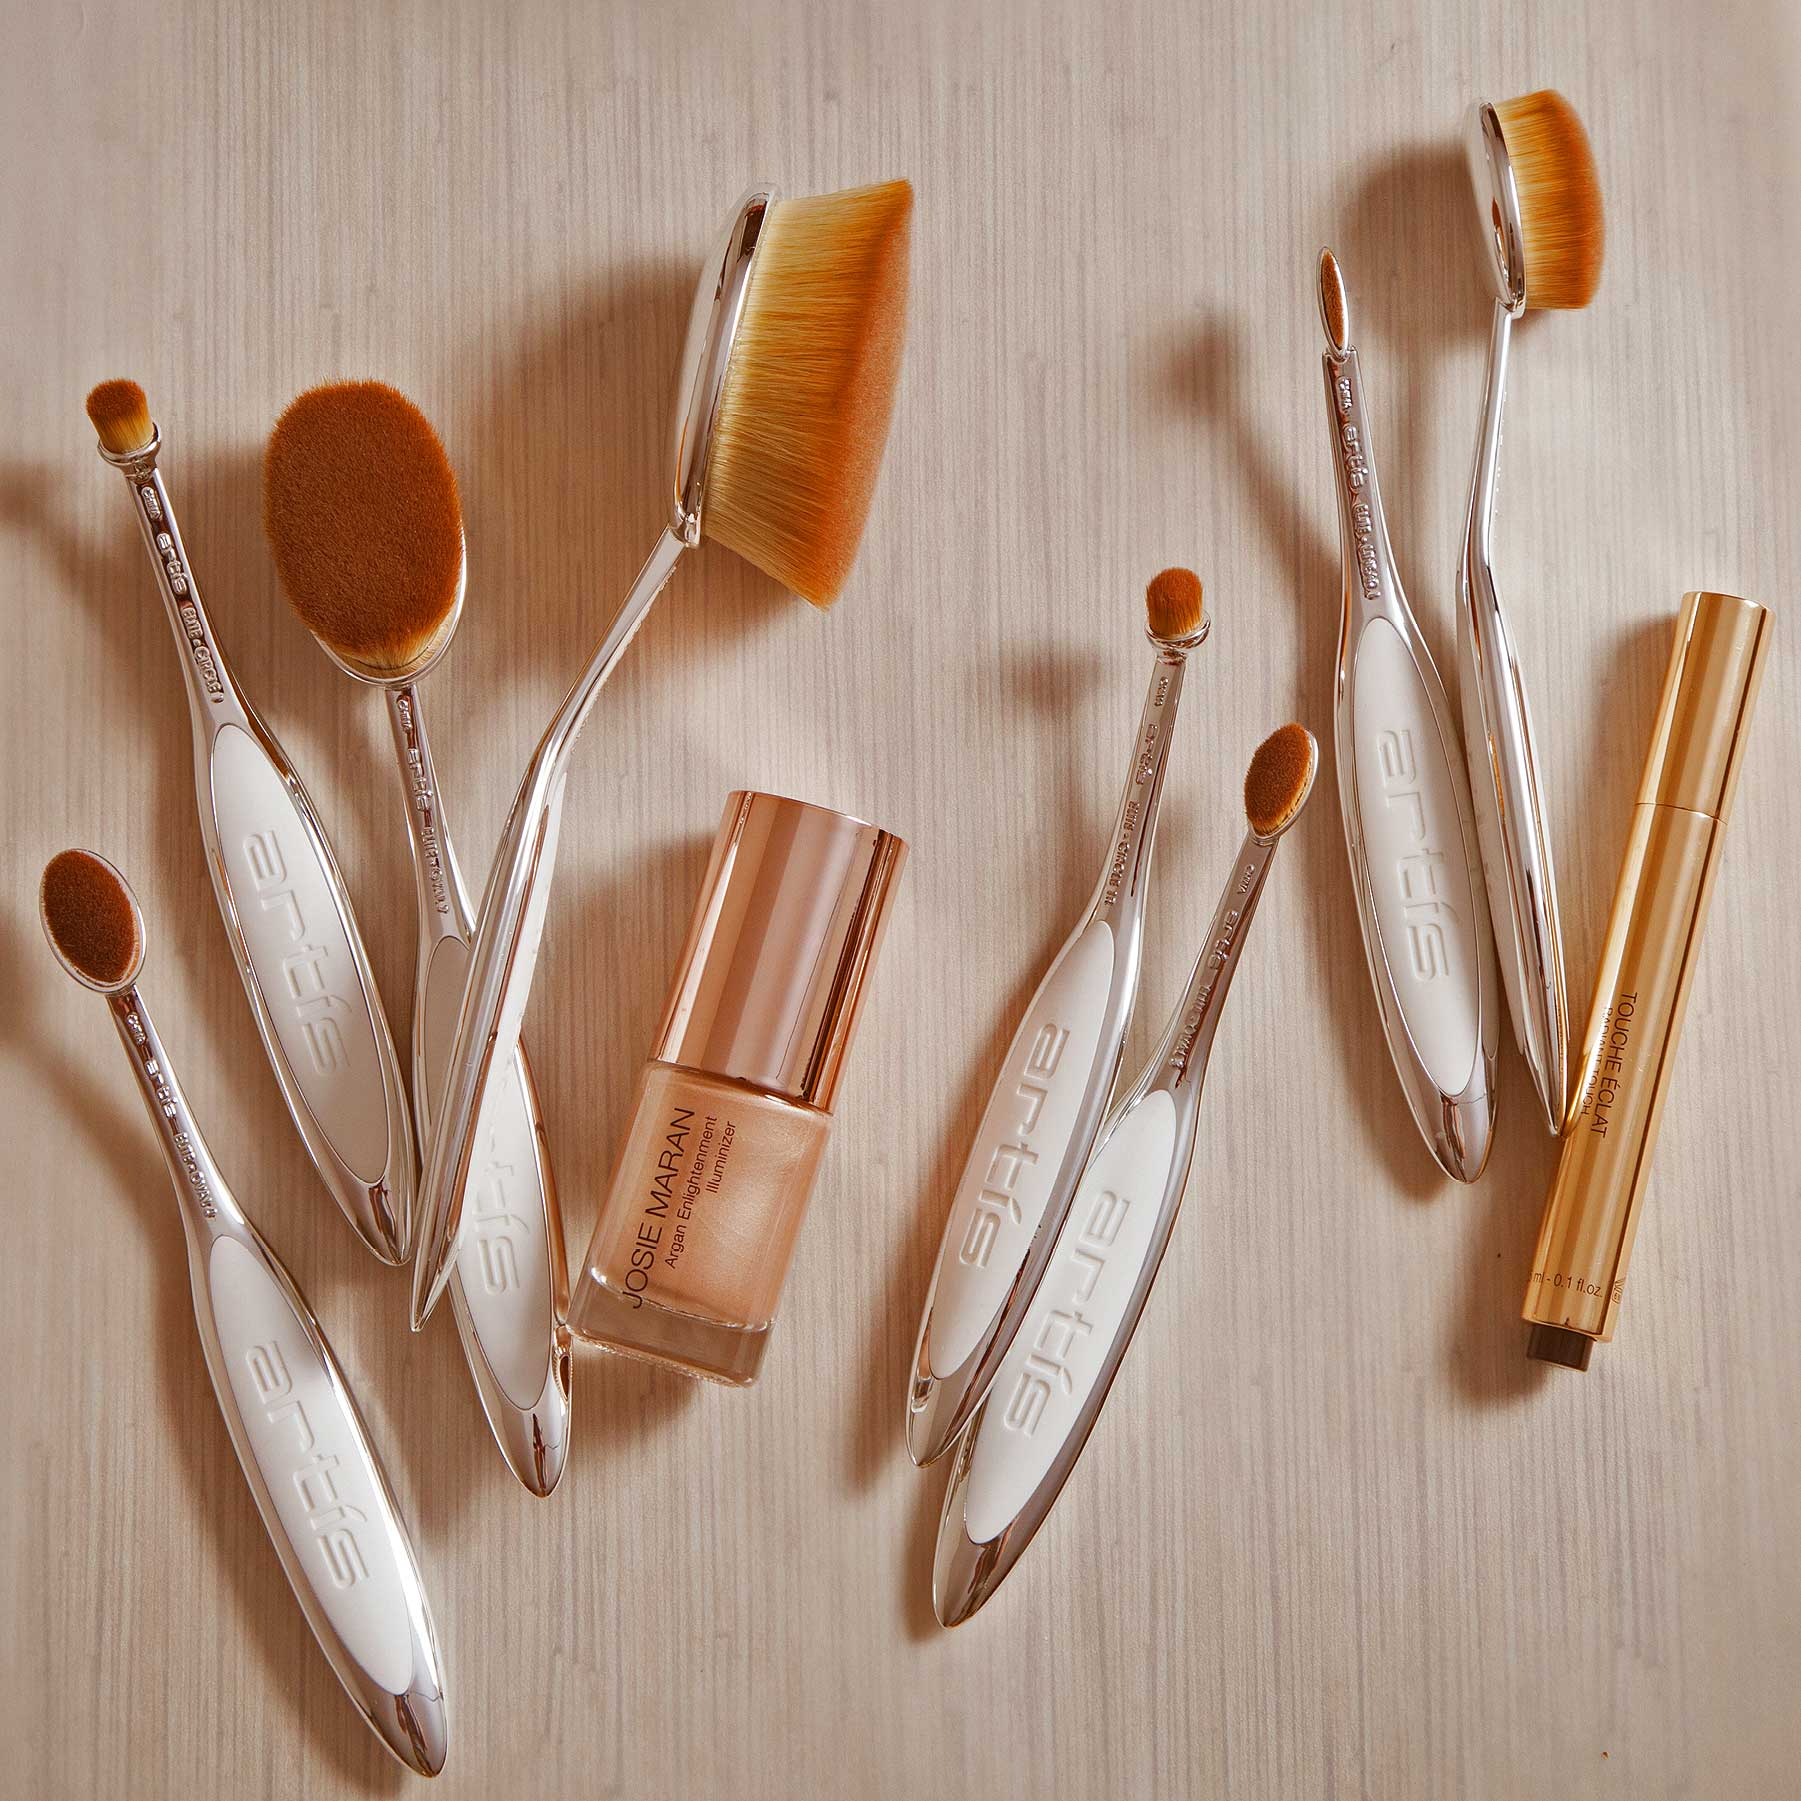 Spoon makeup brushes sephora